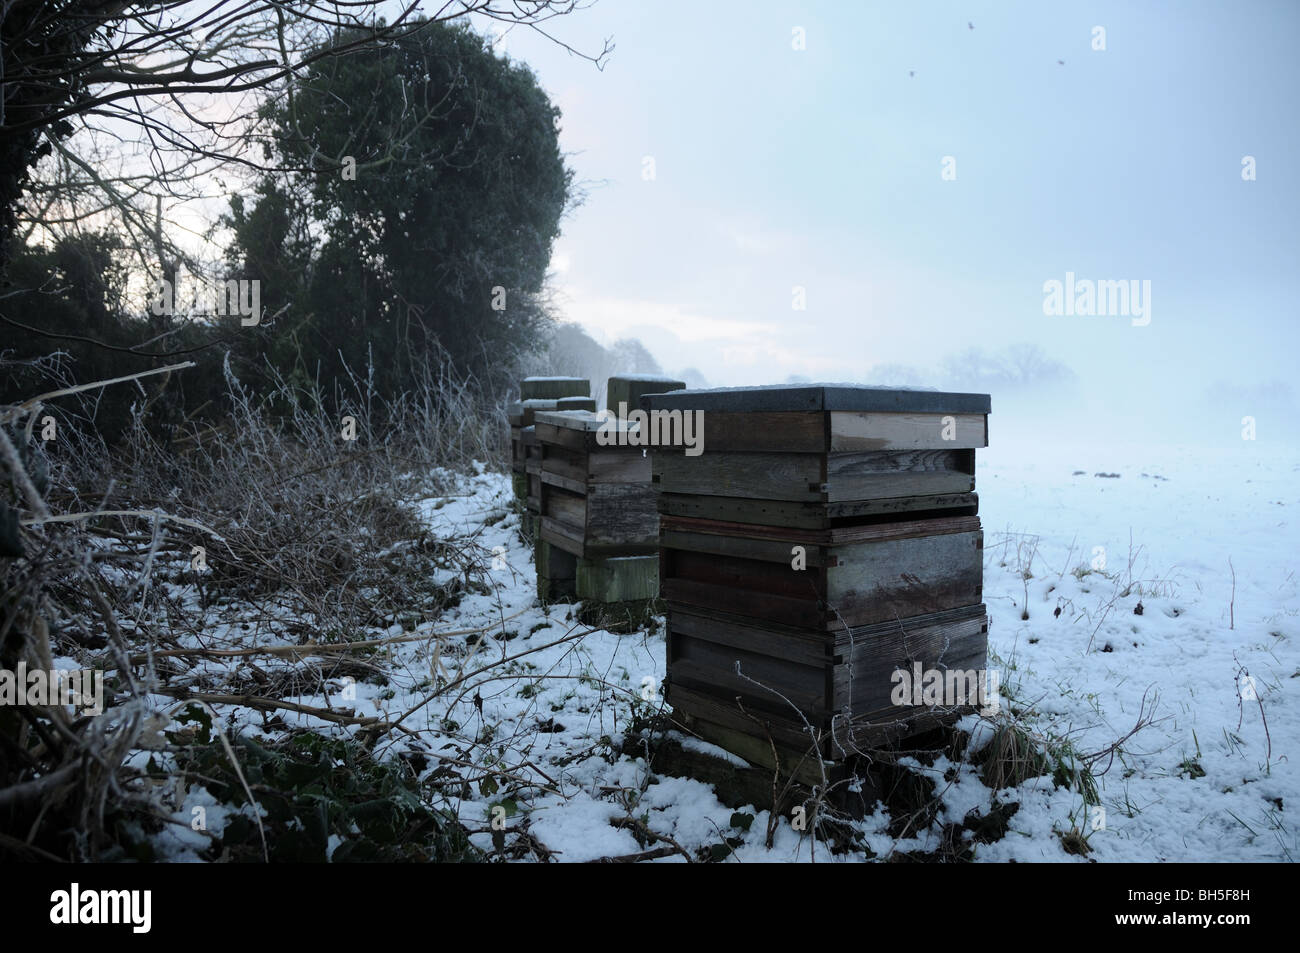 Beehives in snow - Stock Image